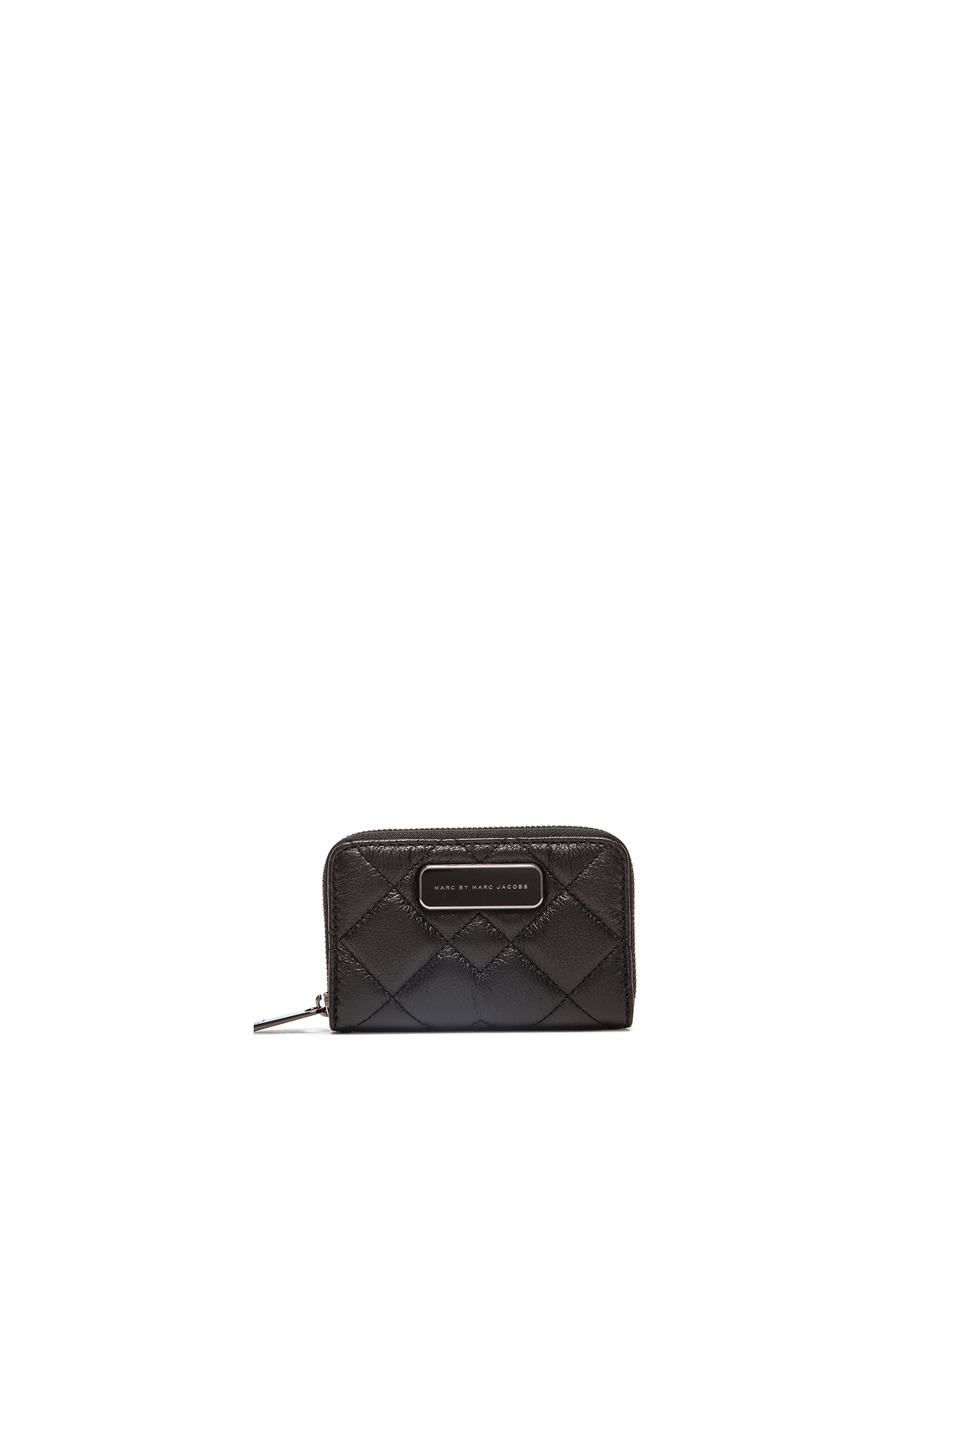 Marc by Marc Jacobs Crosby Quilted Zip Card Case in Black